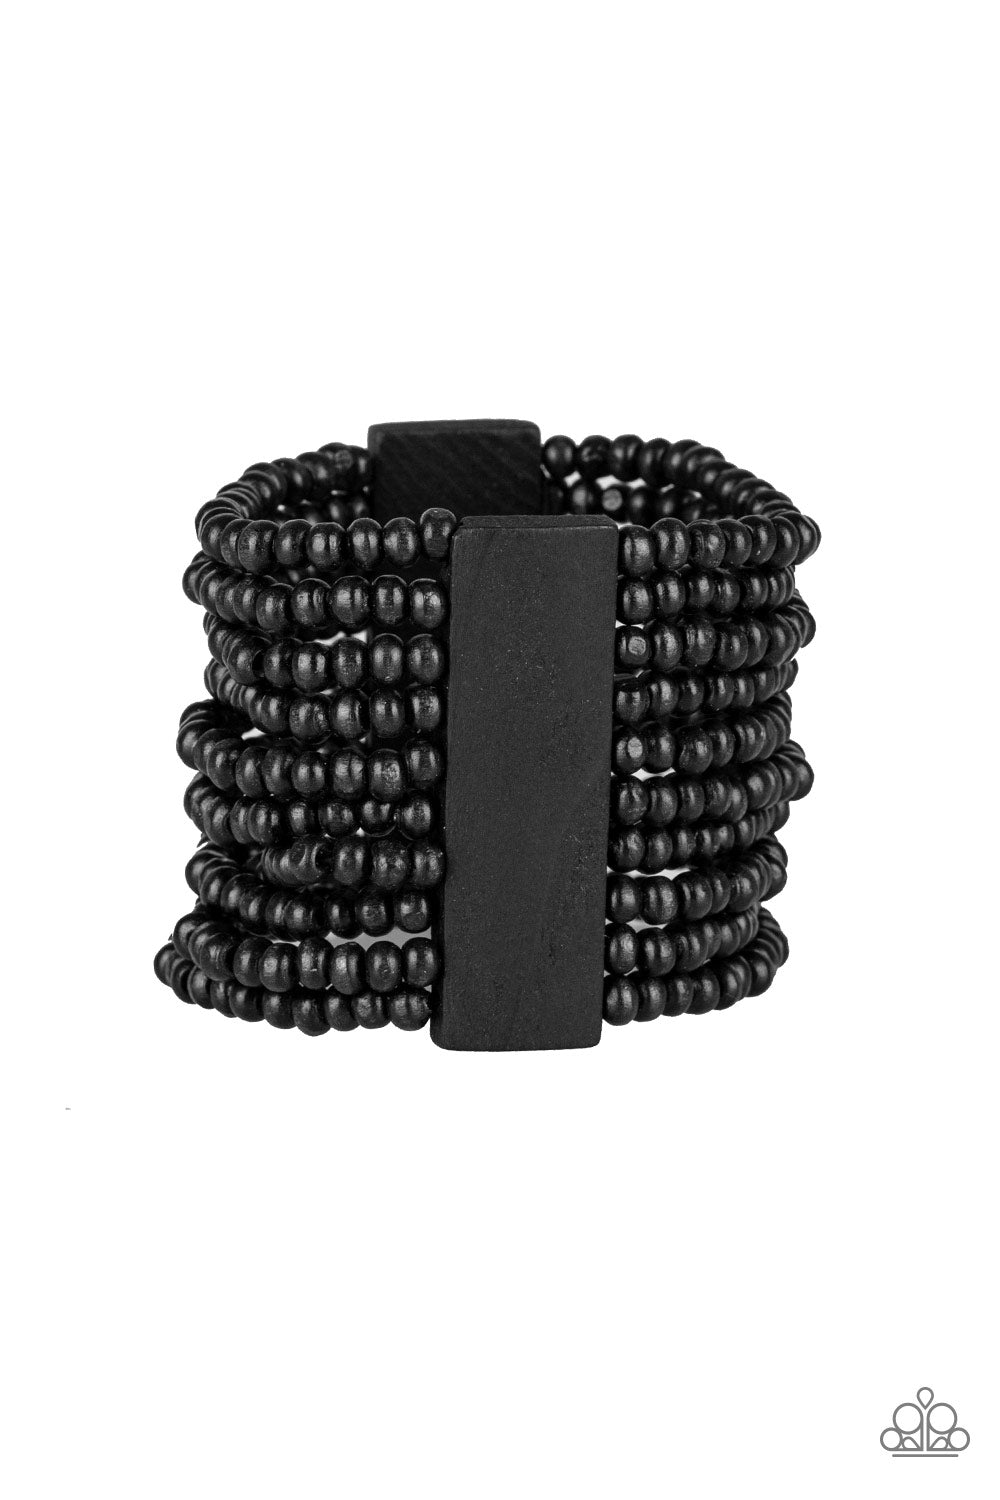 Paparazzi Accessories - JAMAICAN Me Jam - Black Bracelets - JMJ Jewelry Collection